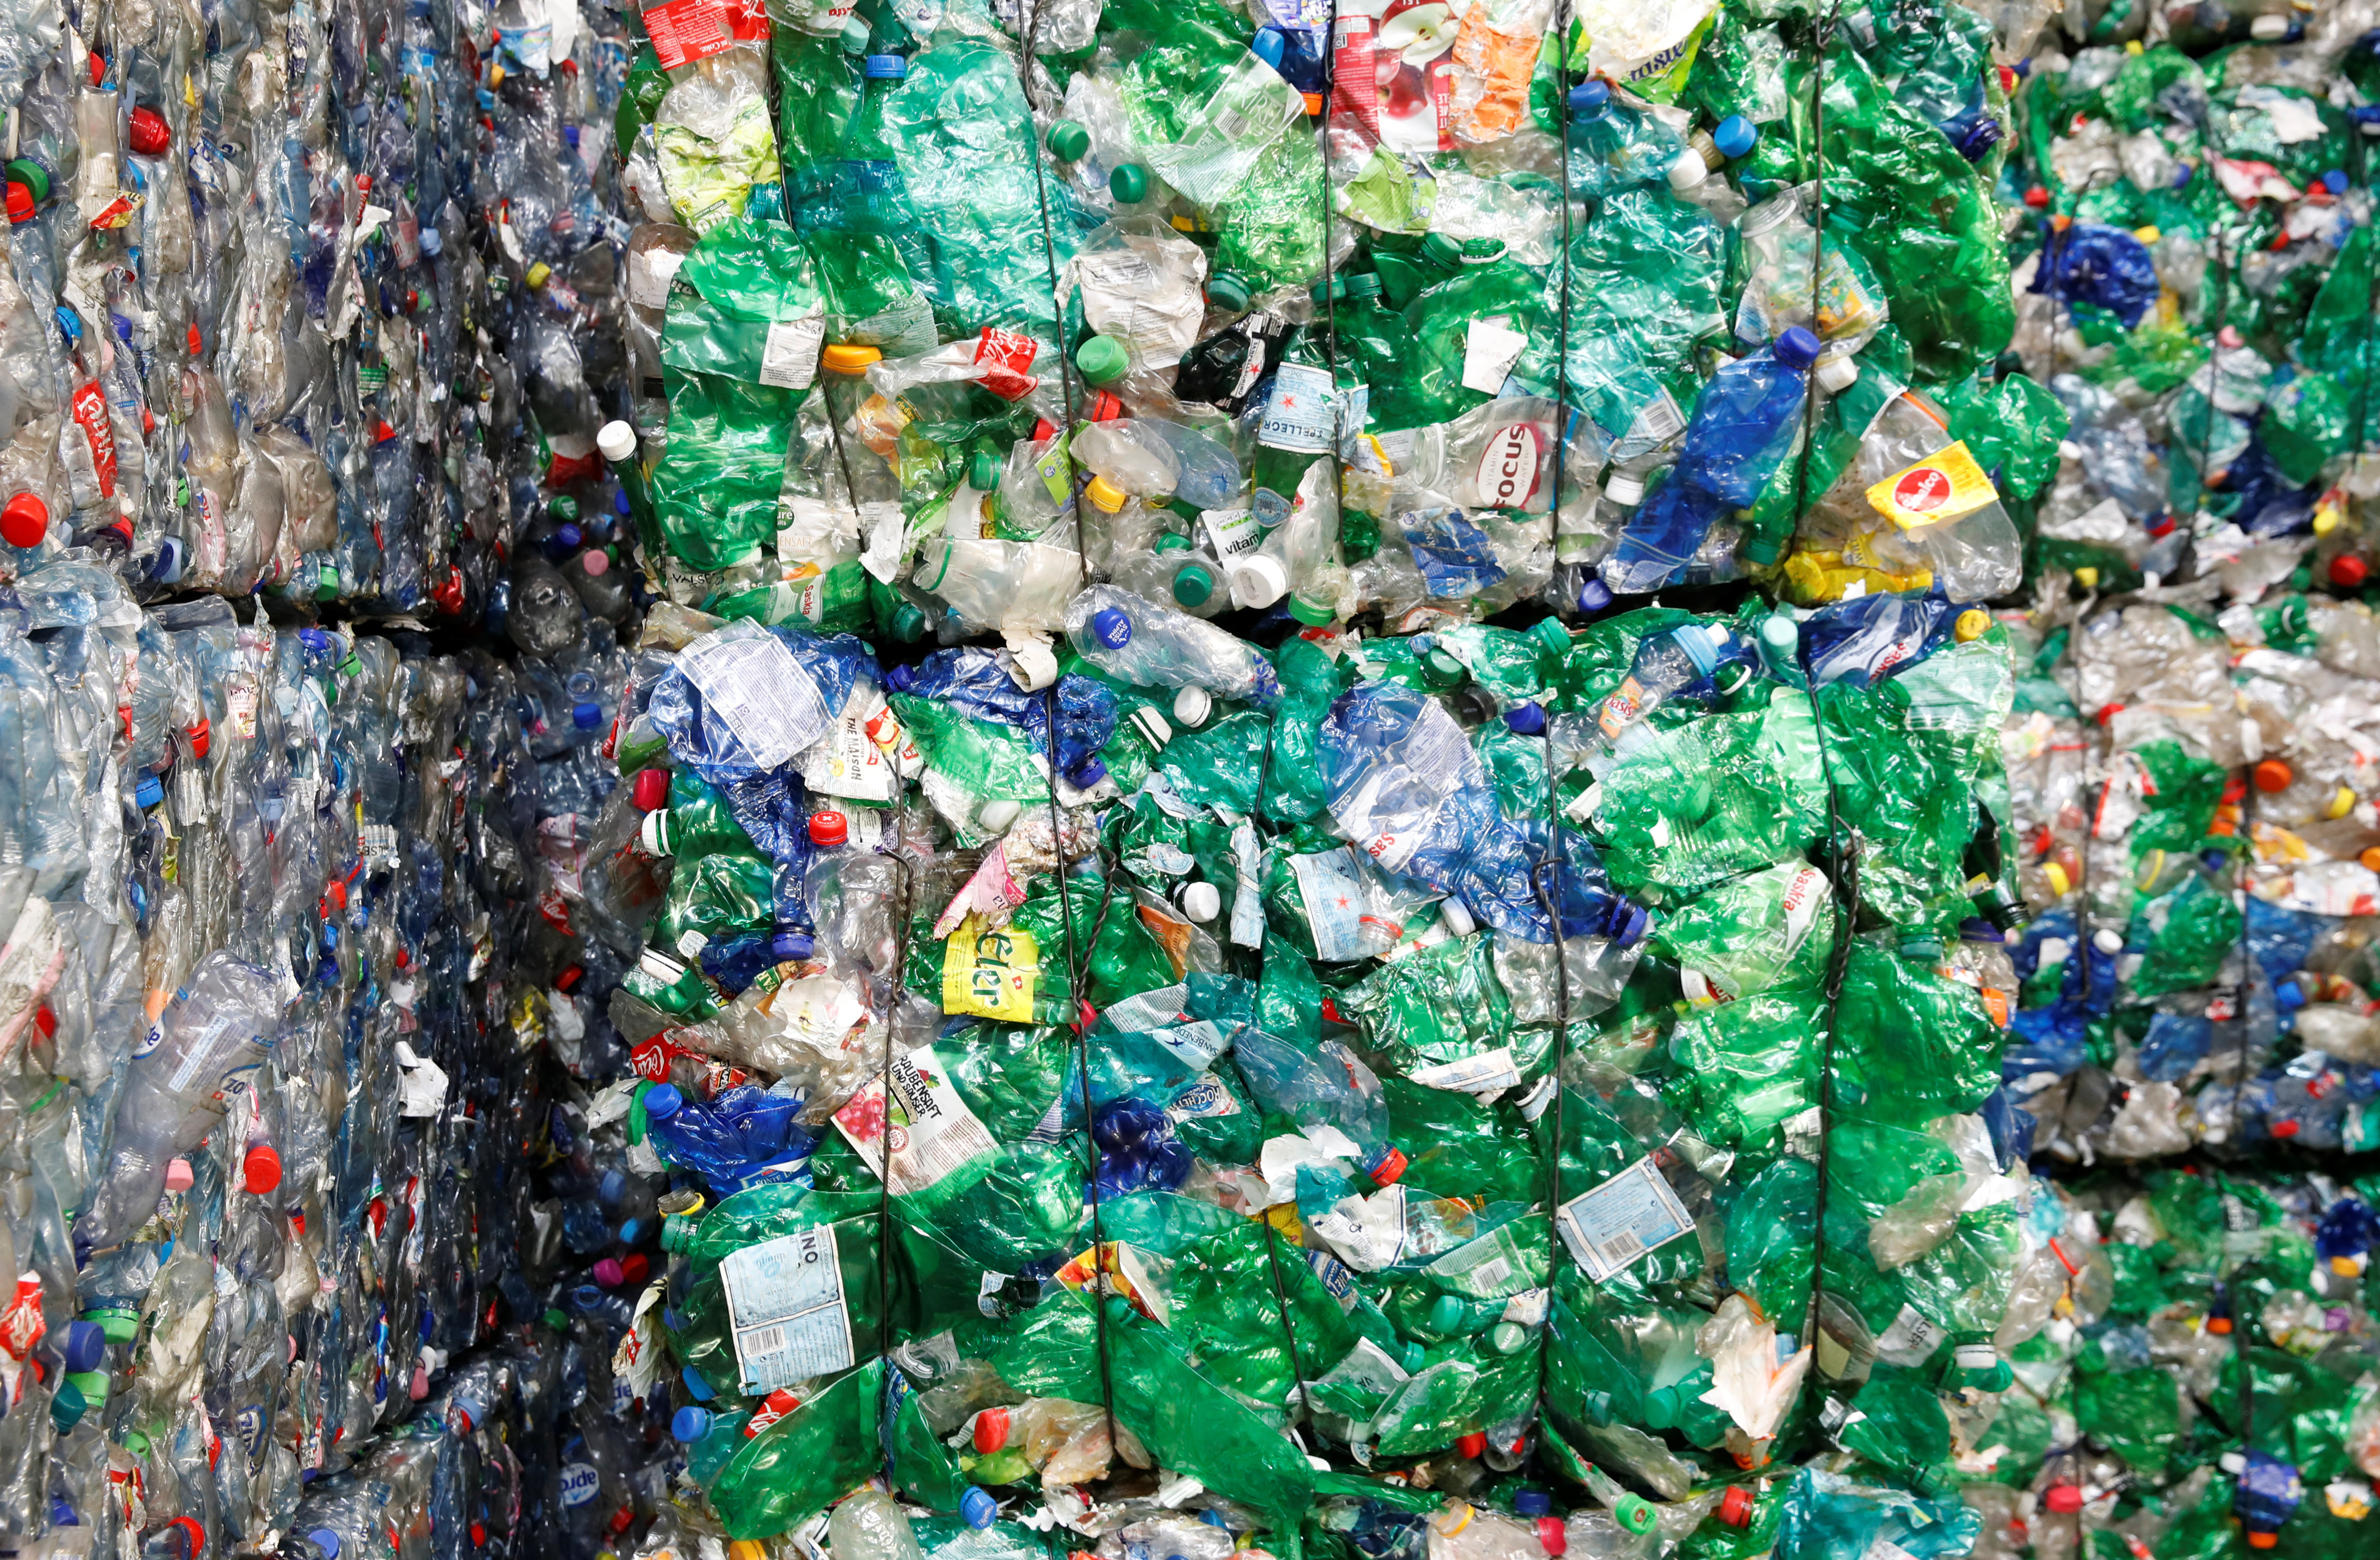 Bundles of pressed PET (polyethylene terephthalate) bottles made out of plastic are seen at the Transcycle Transport & Recycling AG company in Neuenhof, Switzerland November 22, 2018. Picture taken November 22, 2018.   REUTERS/Arnd Wiegmann - RC11F538D6C0